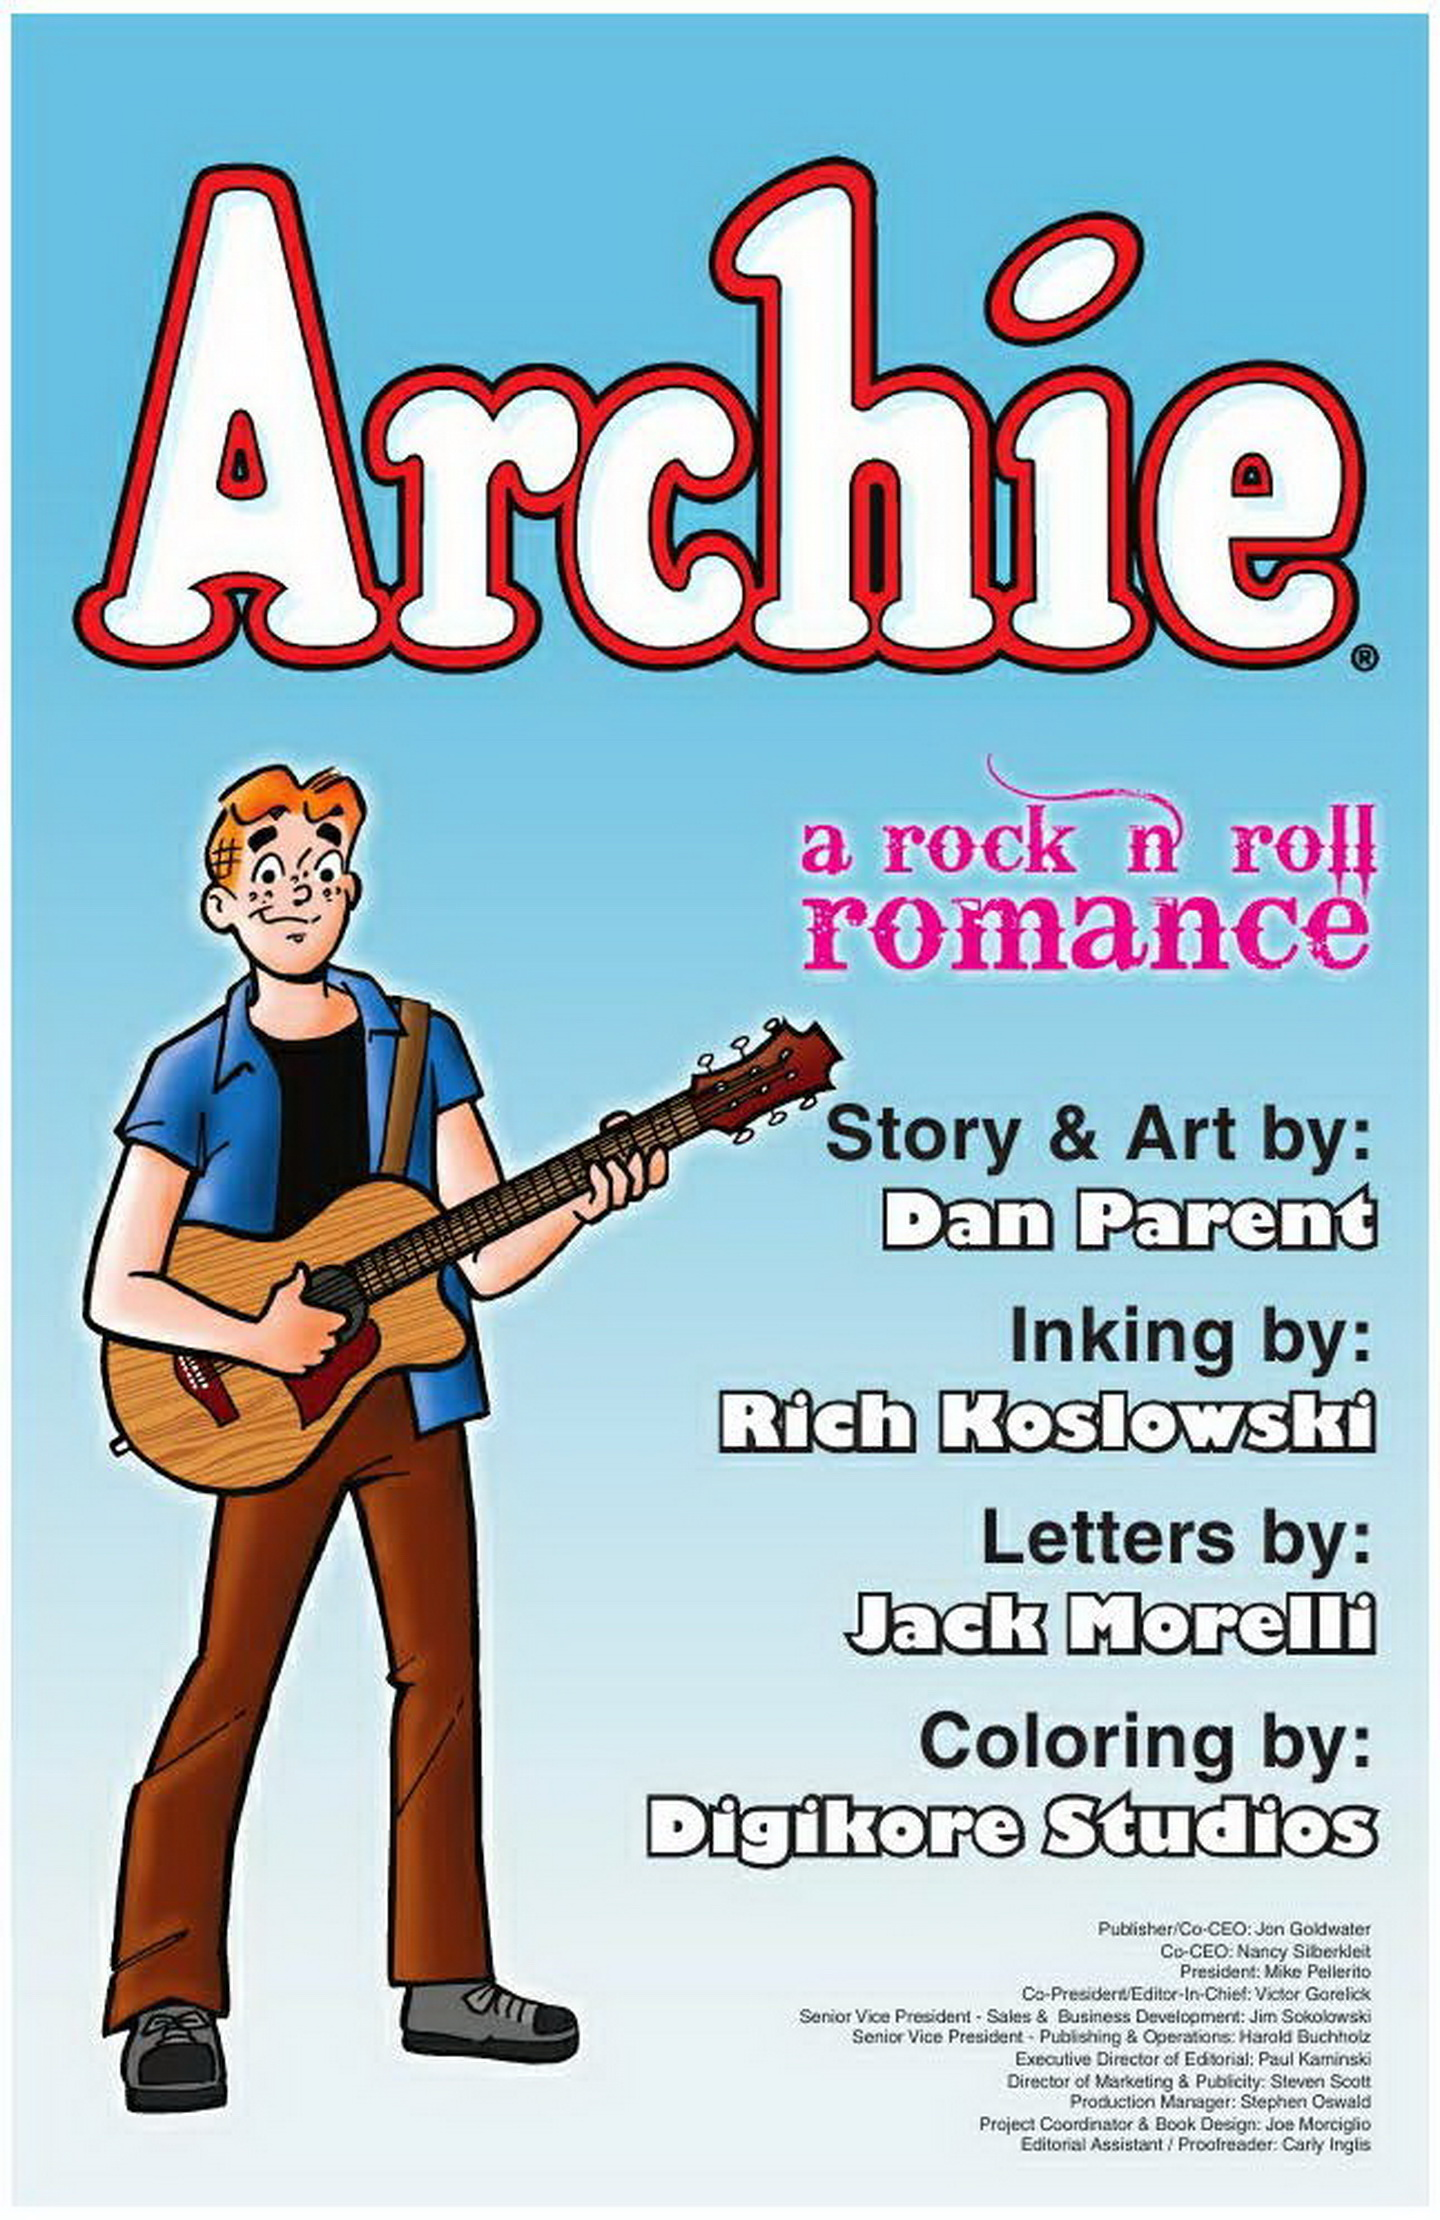 Read online Archie: A Rock 'n' Roll Romance comic -  Issue #Archie: A Rock 'n' Roll Romance Full - 3